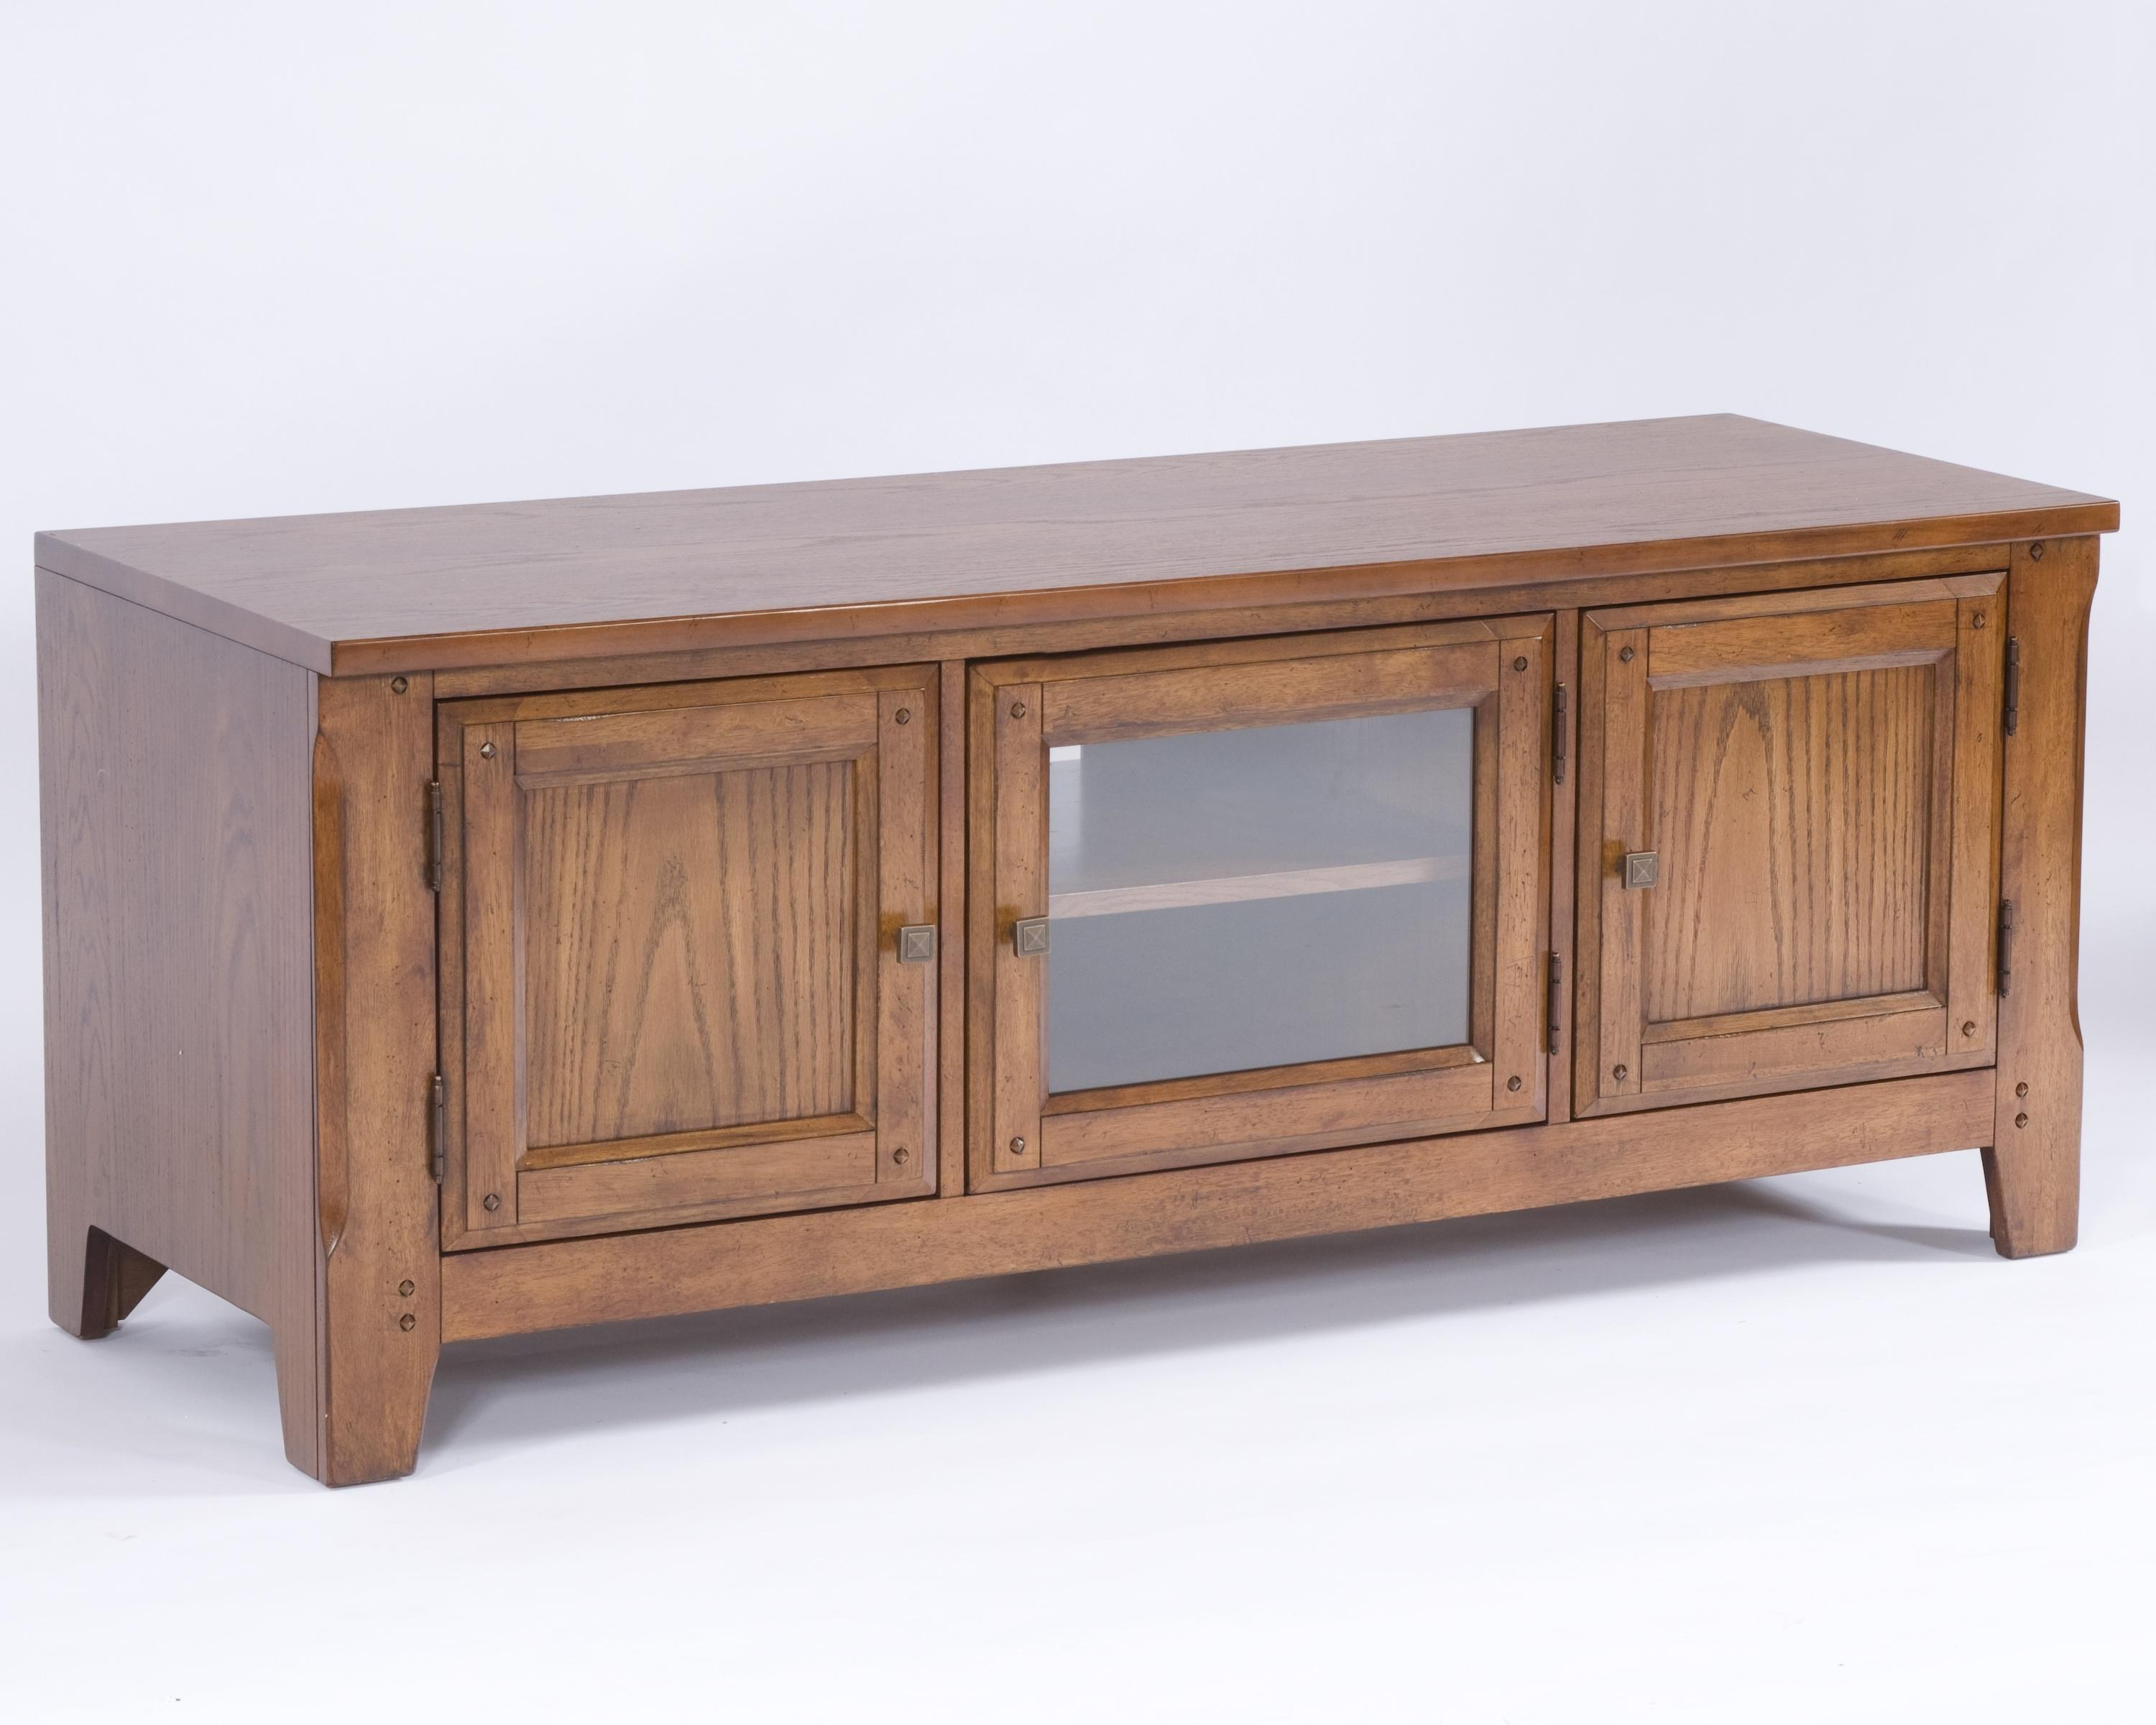 Broyhill Furniture Attic Heirlooms 60  Entertainment Console - AHFA - TV Stands Dealer Locator & Broyhill Furniture Attic Heirlooms 60